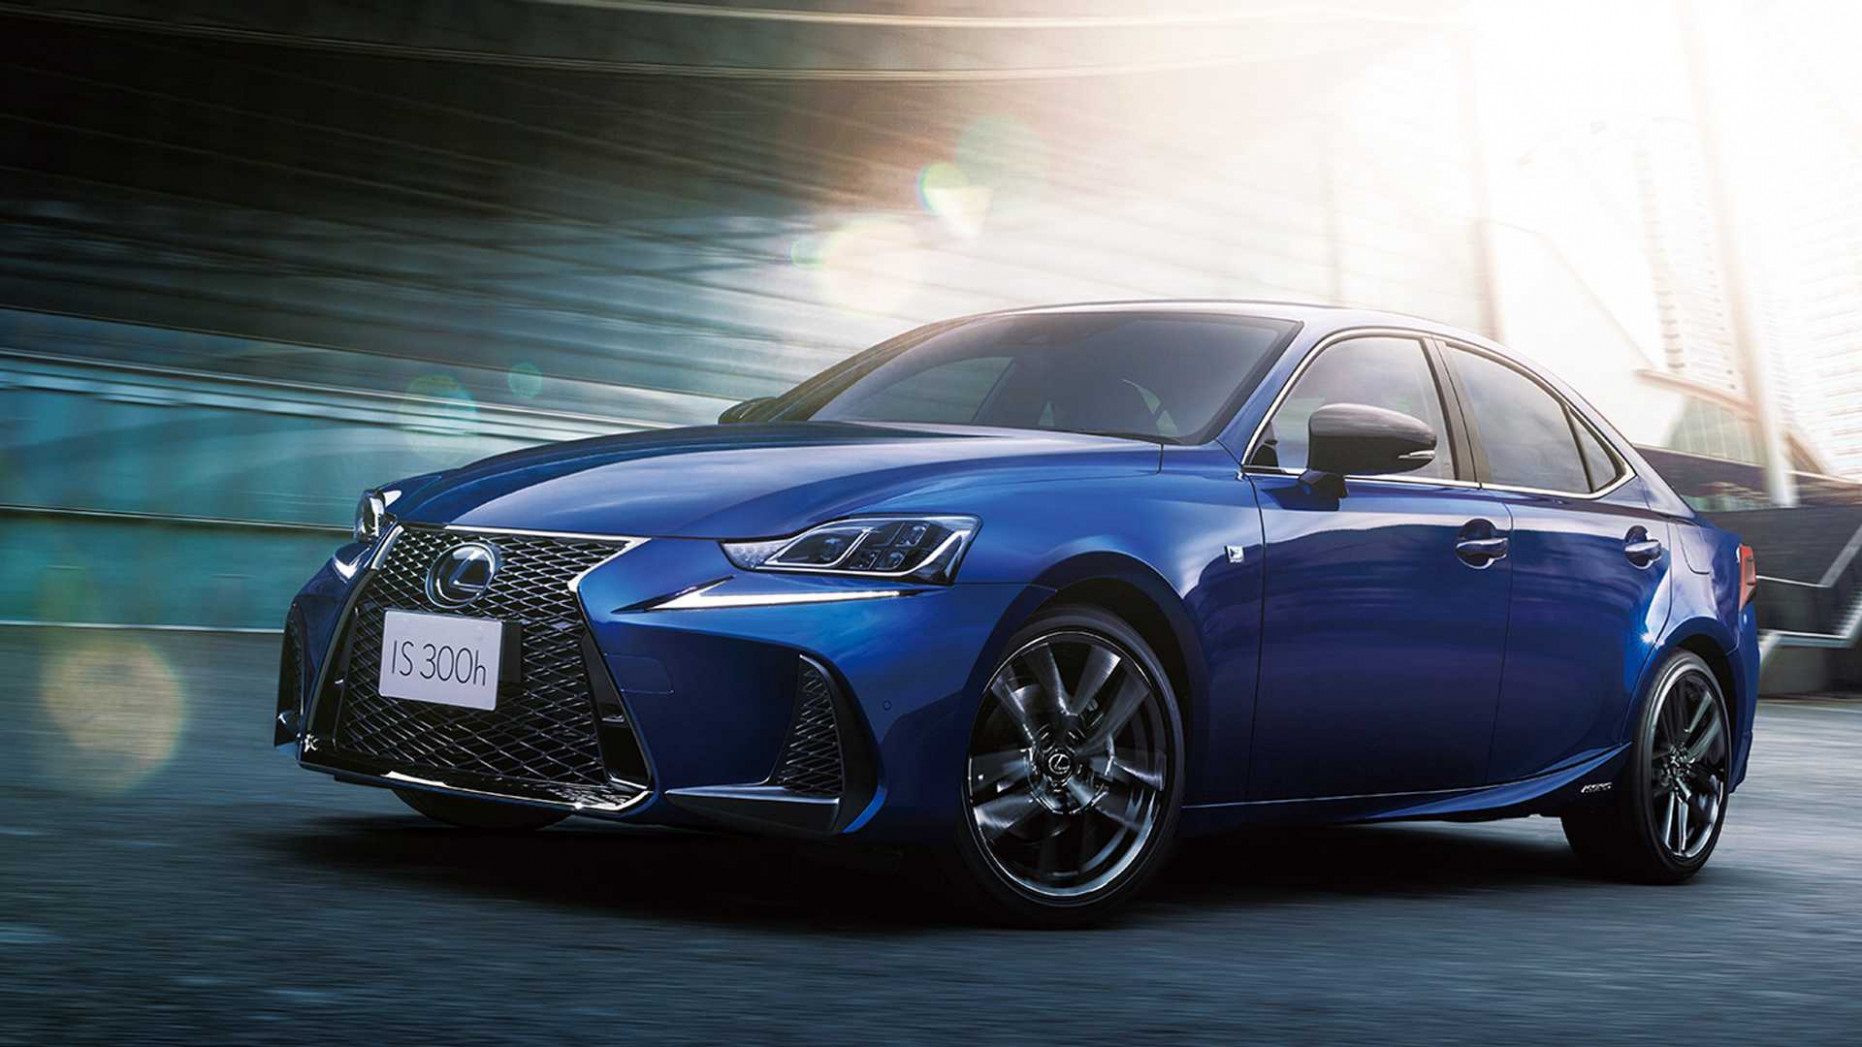 Redesign and Concept Lexus Is300H 2022